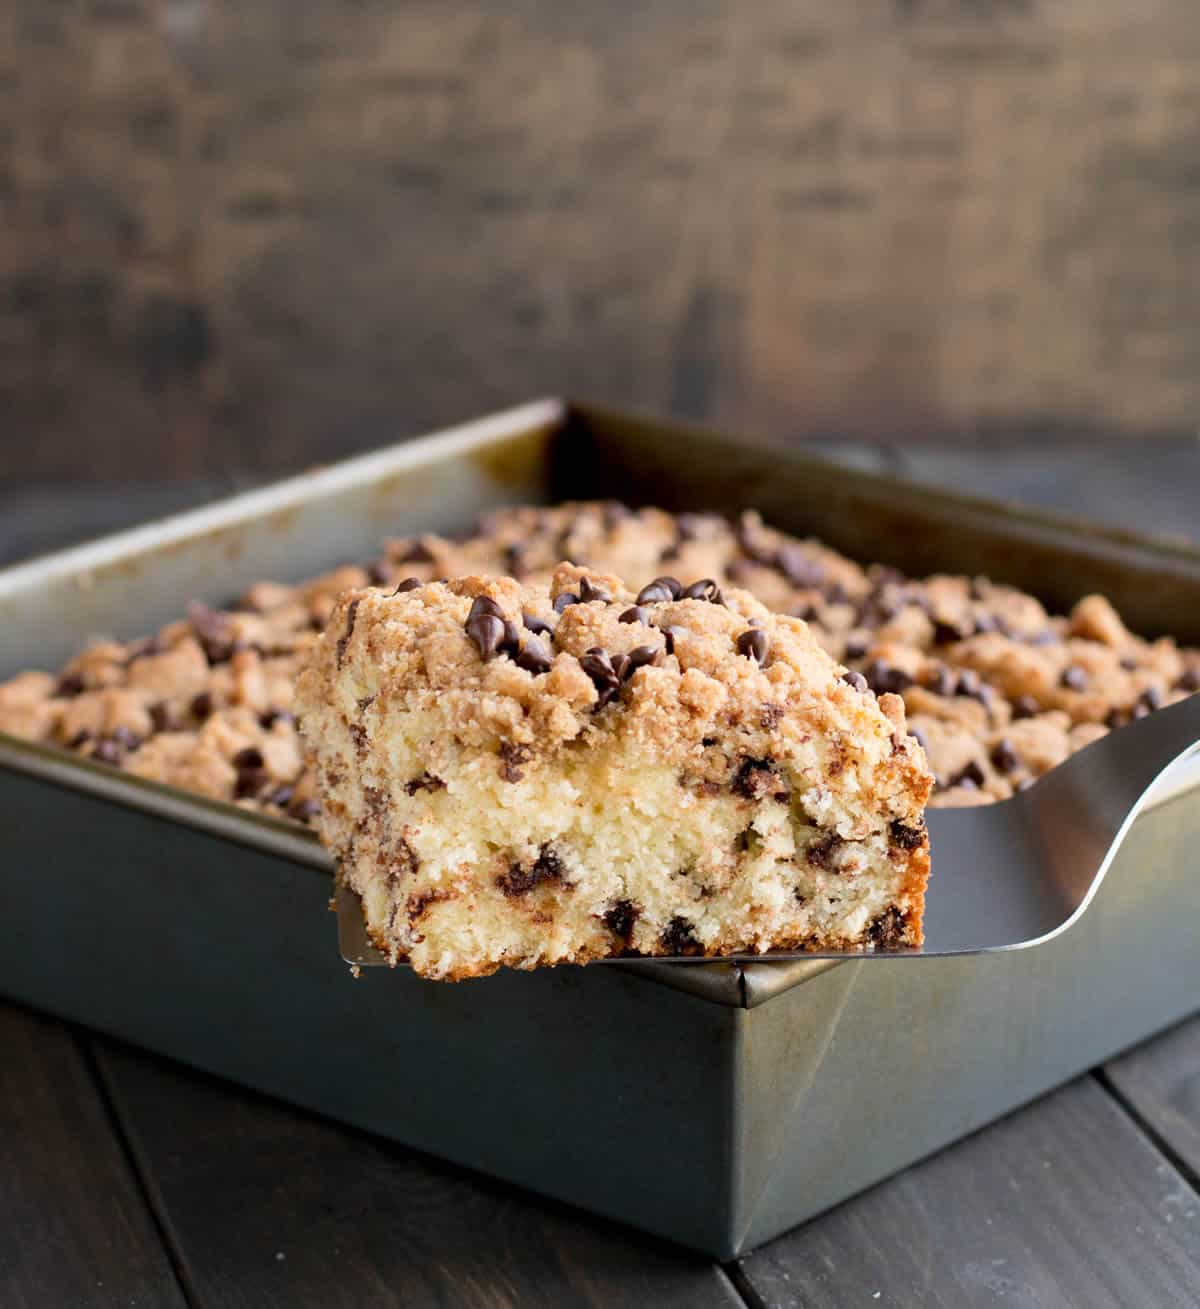 Chocolate Chip Crumb Cake. A delicious breakfast cake, rich with sour cream and butter, dotted with chocolate chips and crowned with a sweet crumb topping.